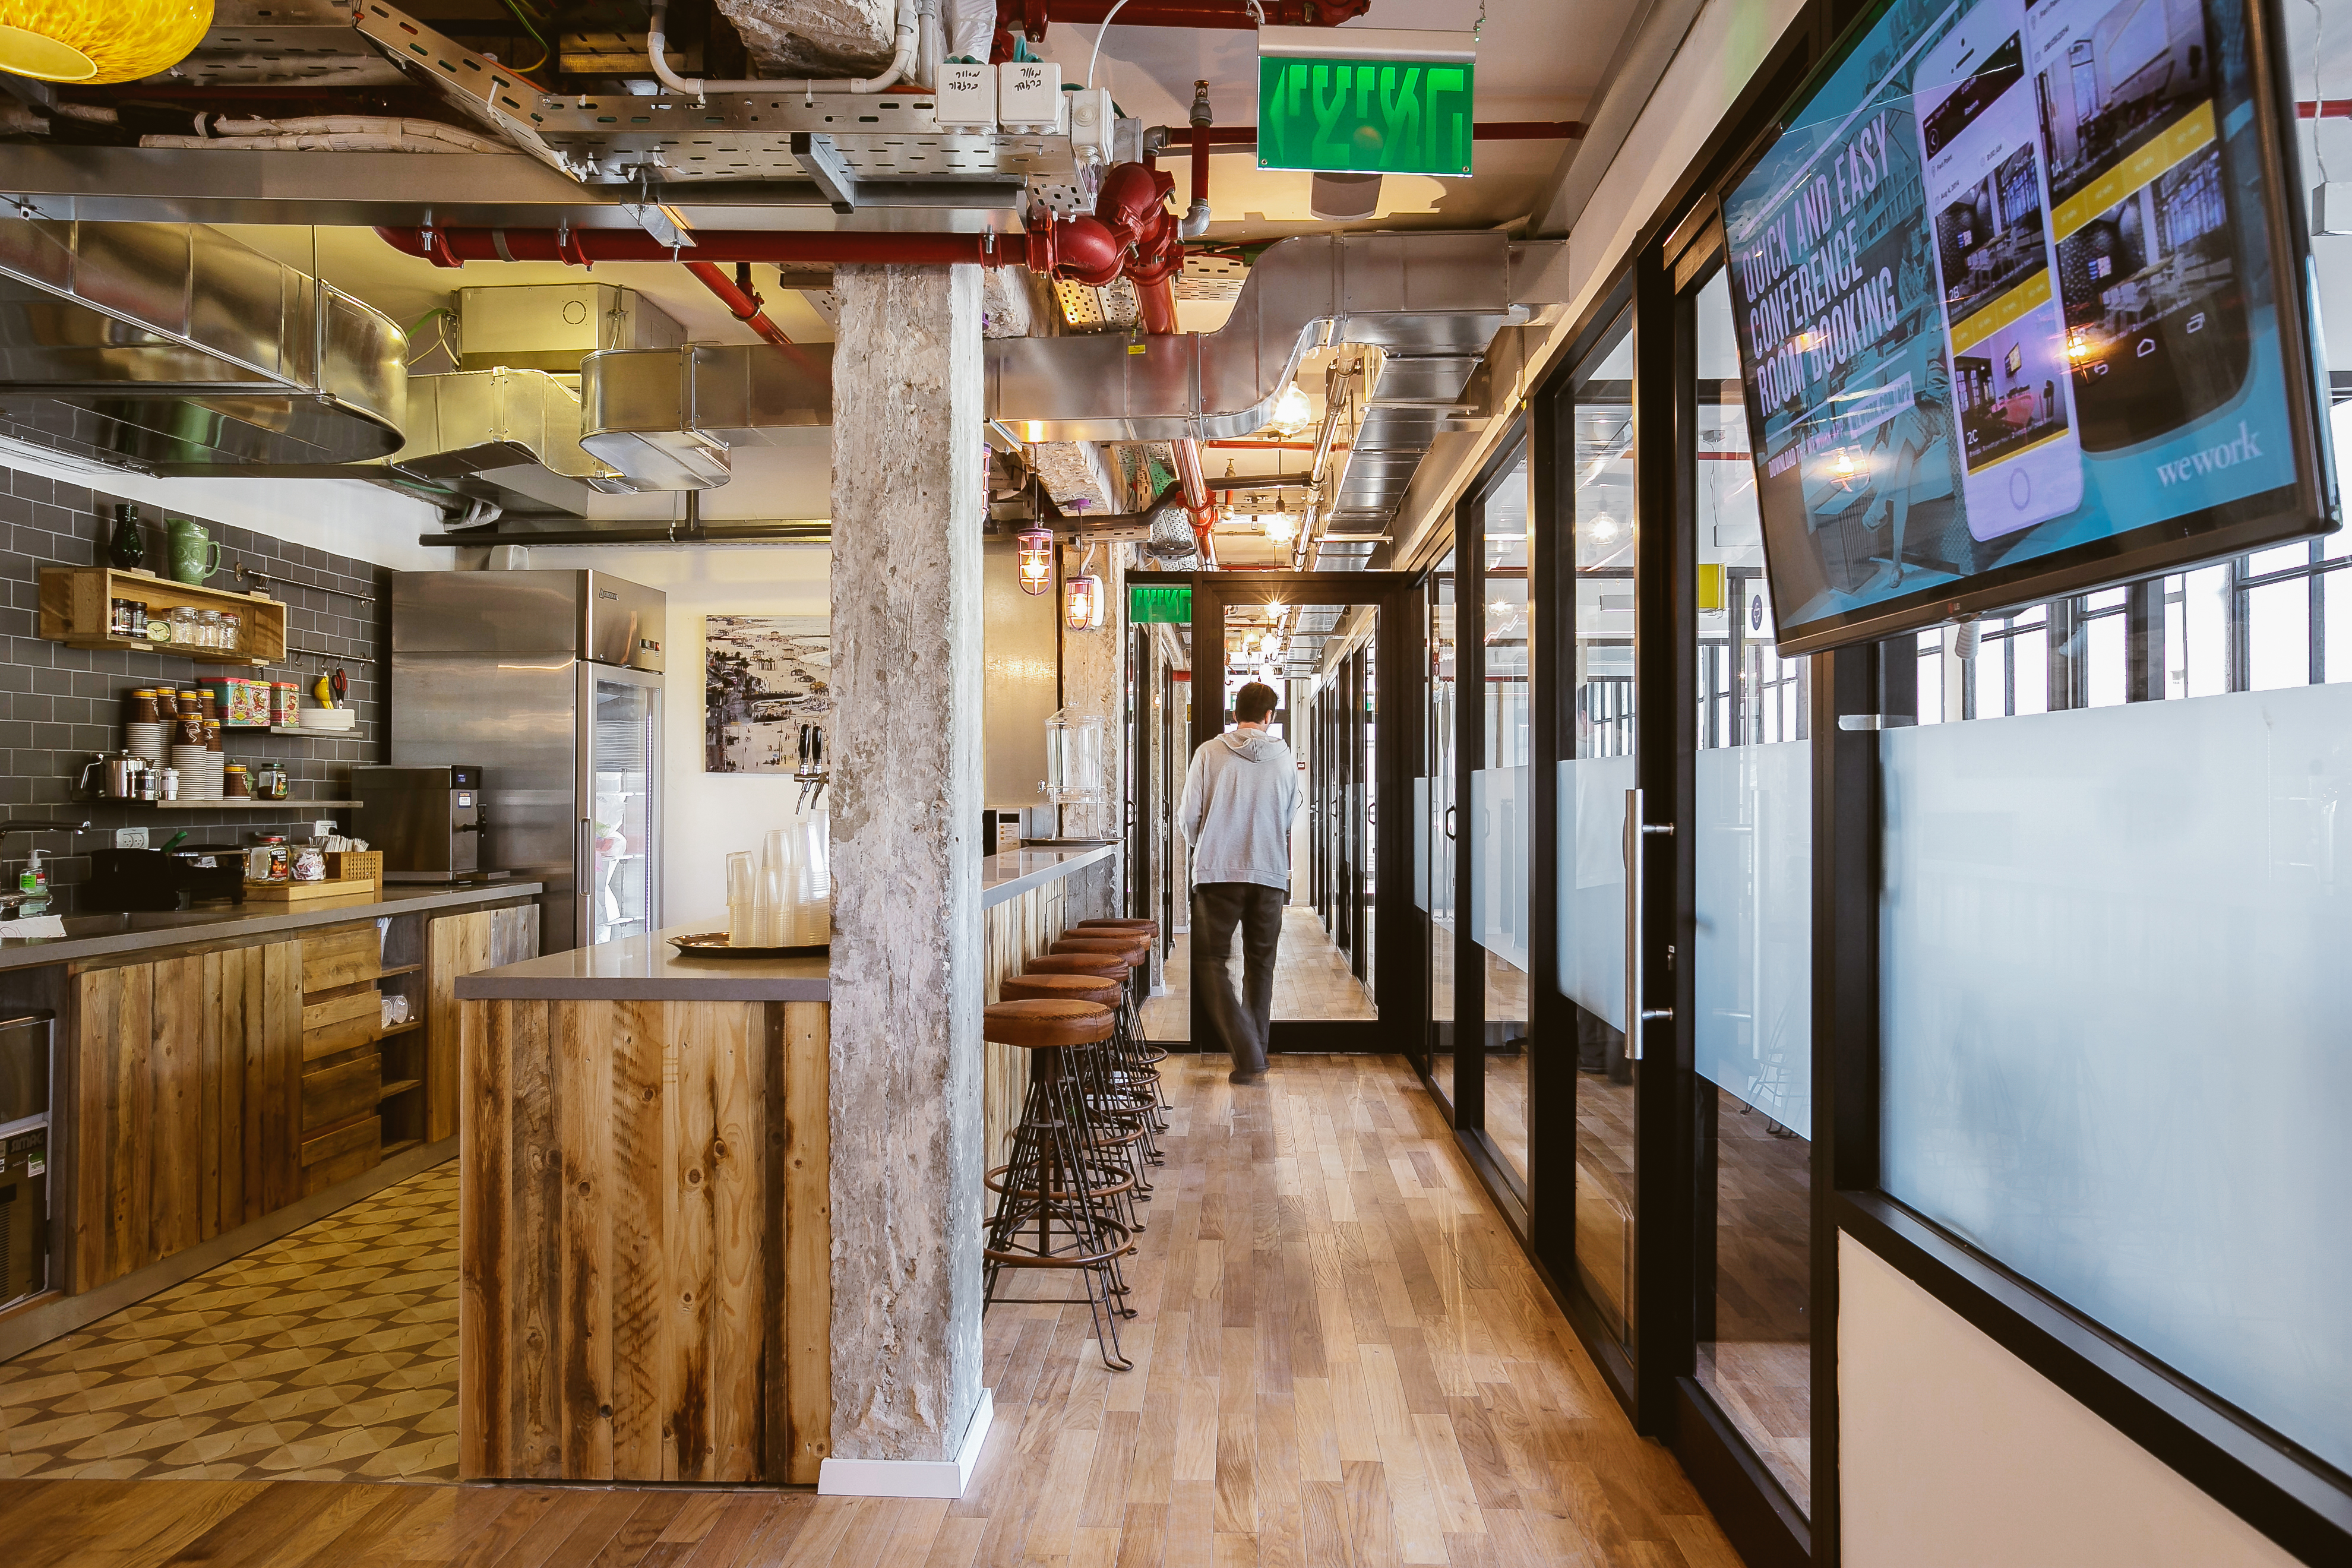 wework - THE BOWER - 207 Old Street, EC1 - Old Street